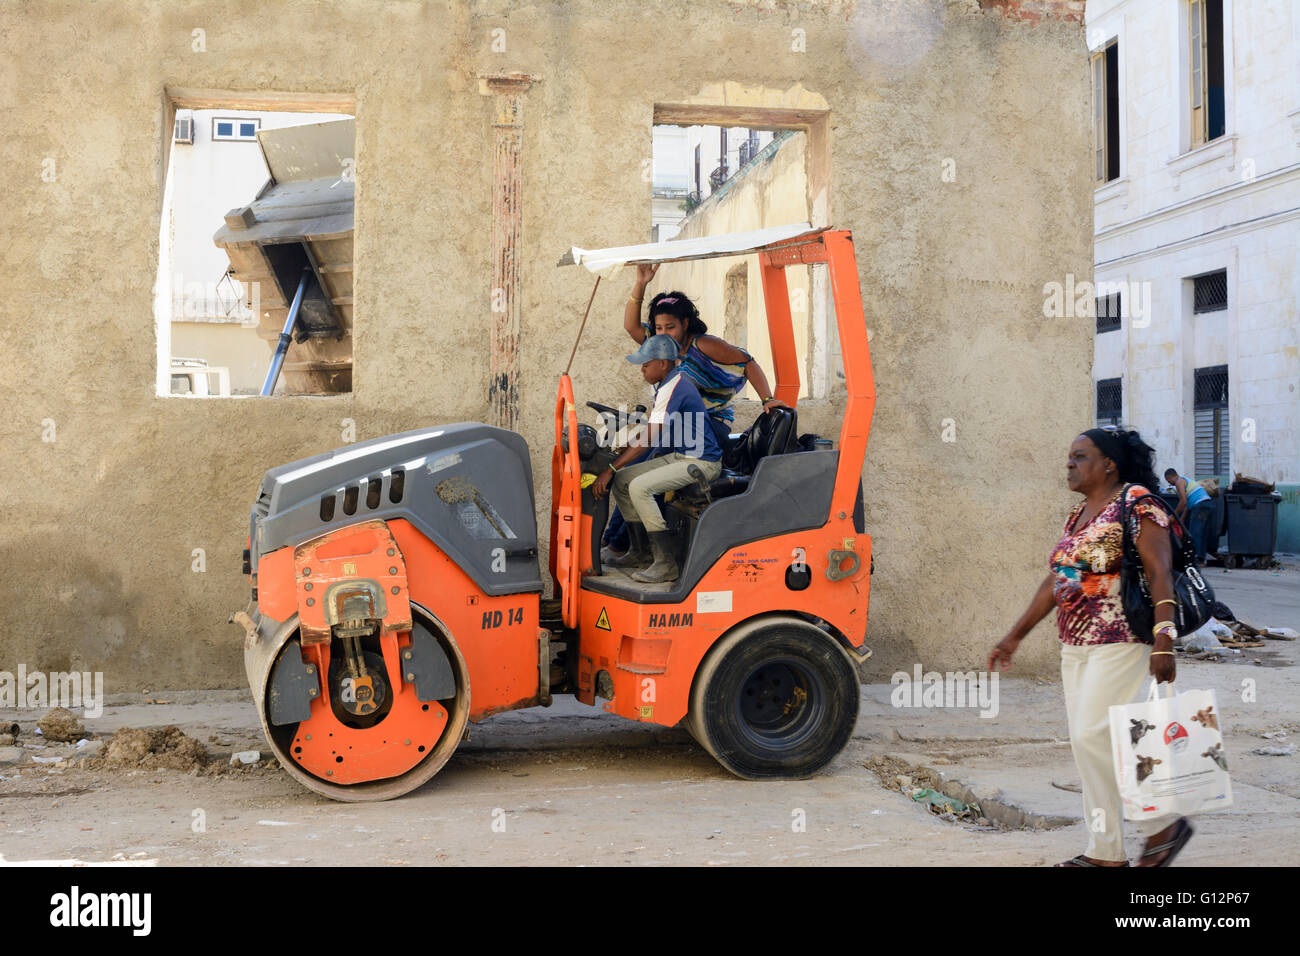 A mother teaches her young son how to drive a road roller in Central Havana, Havana, Cuba - Stock Image